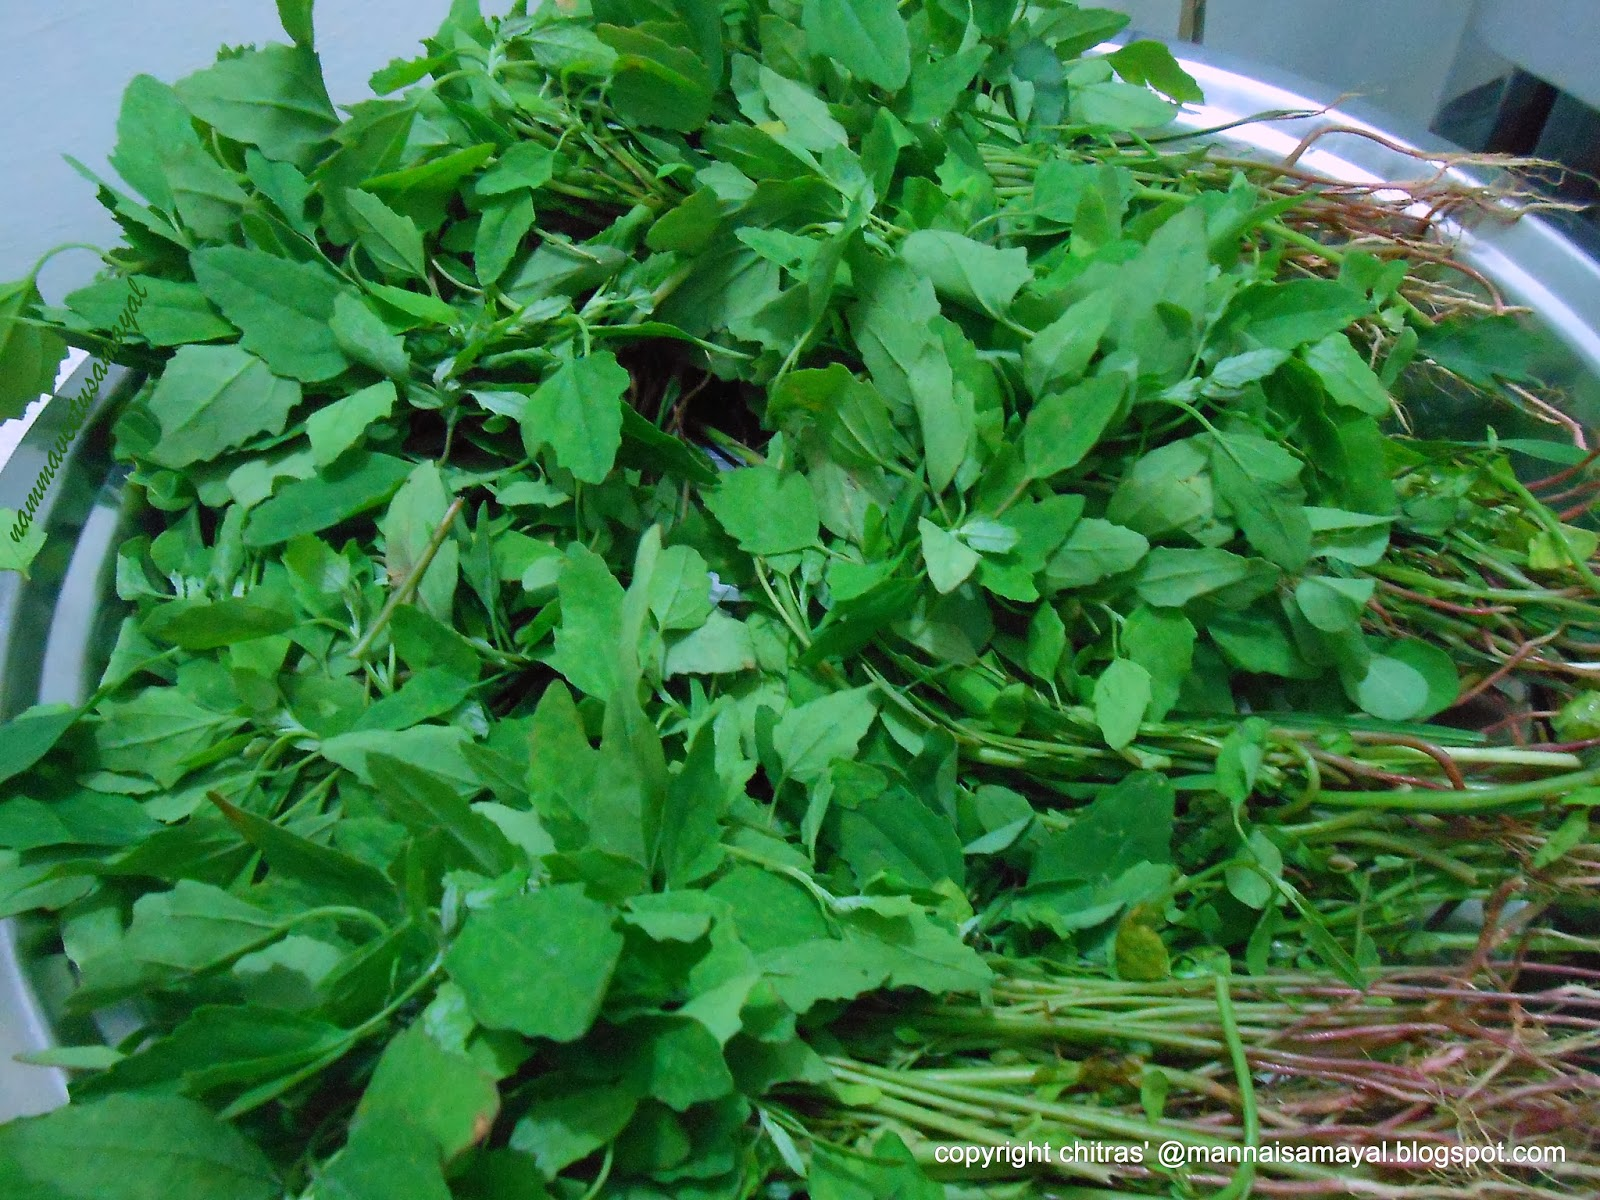 Chhattisgarh famous greens : Bathua